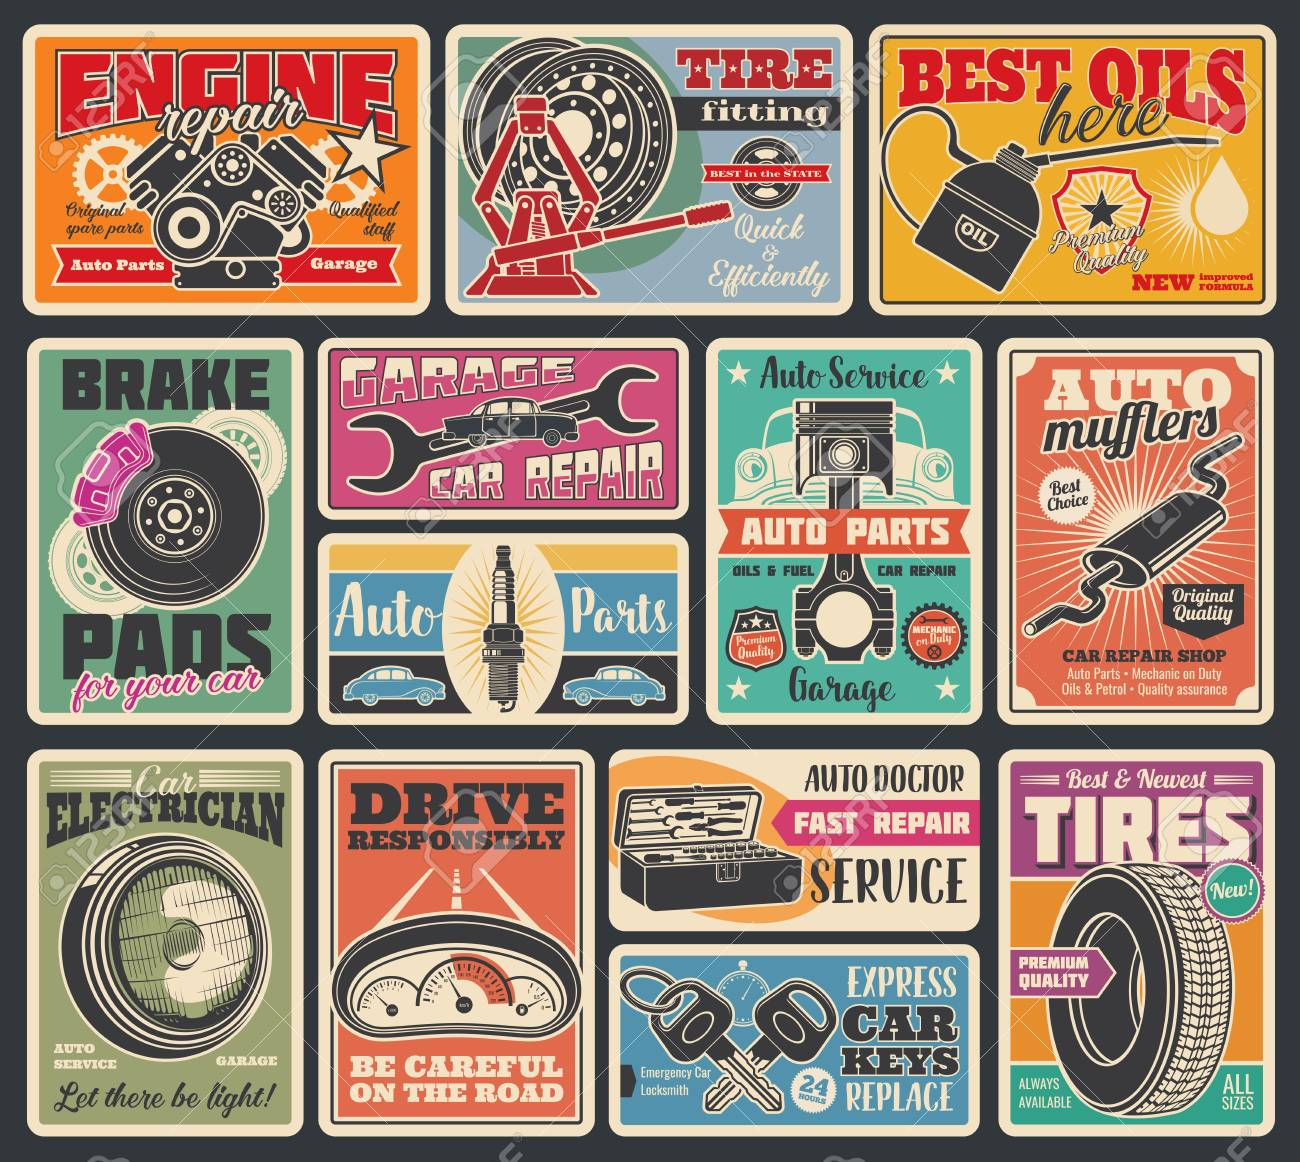 Car service and auto center vintage signboard. Vector retro design of car engine oil service, tire fitting or pumping and mechanic repair or spare parts store, keys, battery or oil - 109985295